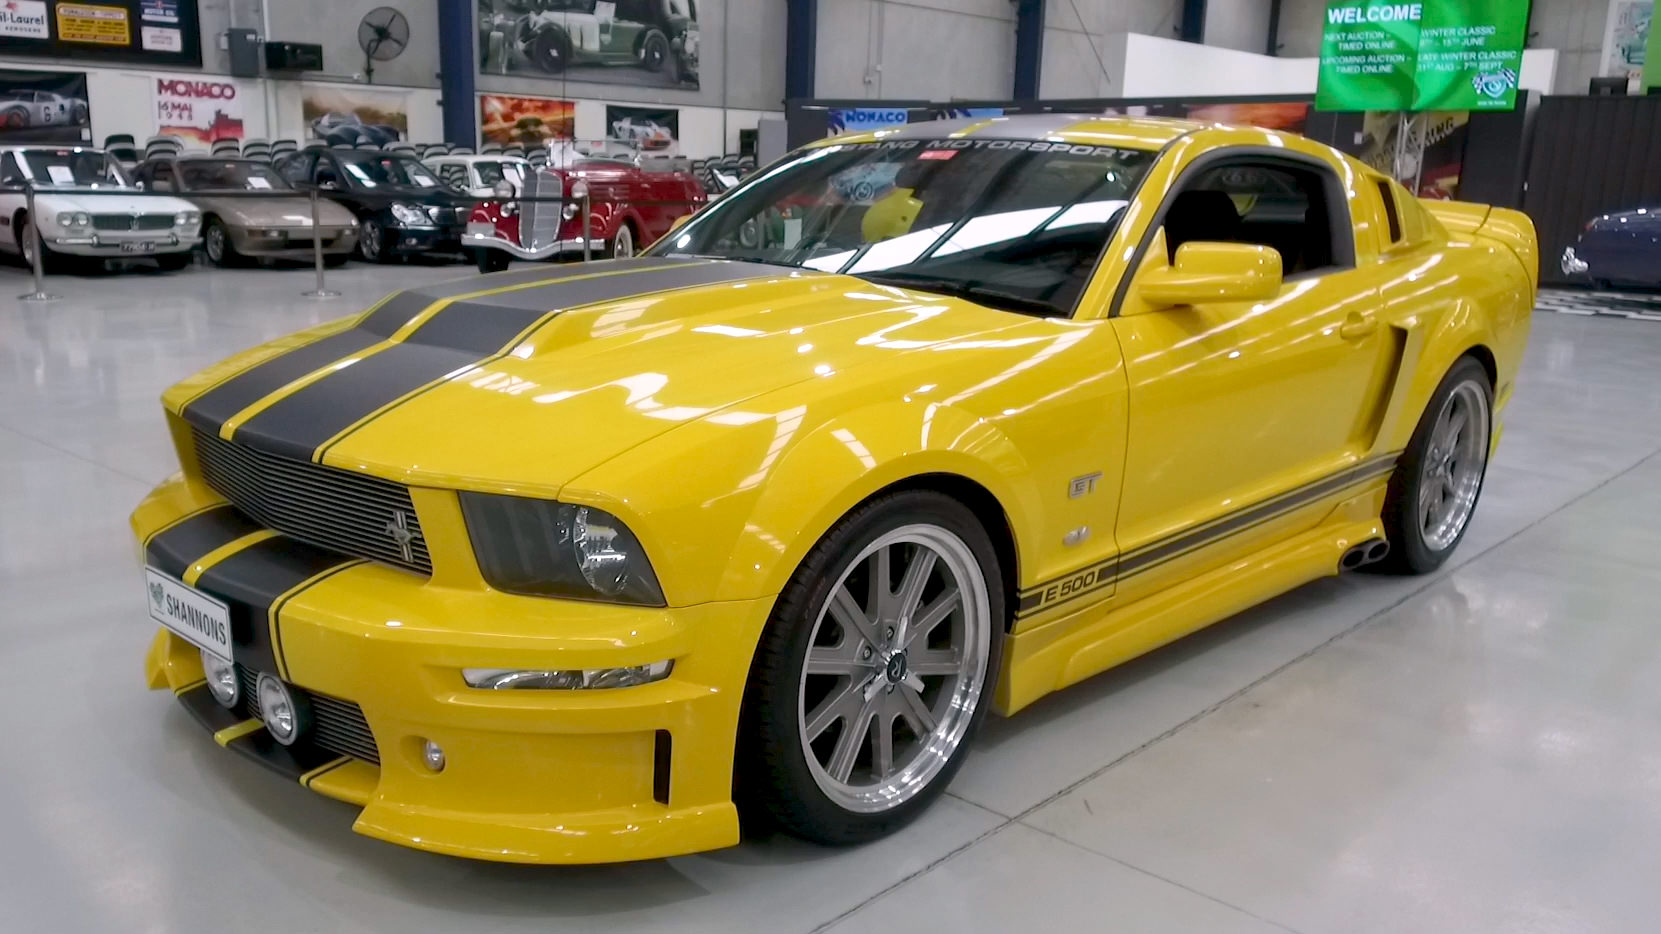 2005 Ford Mustang GT 'E500' Coupe (RHD) - 2021 Shannons Winter Timed Online Auction